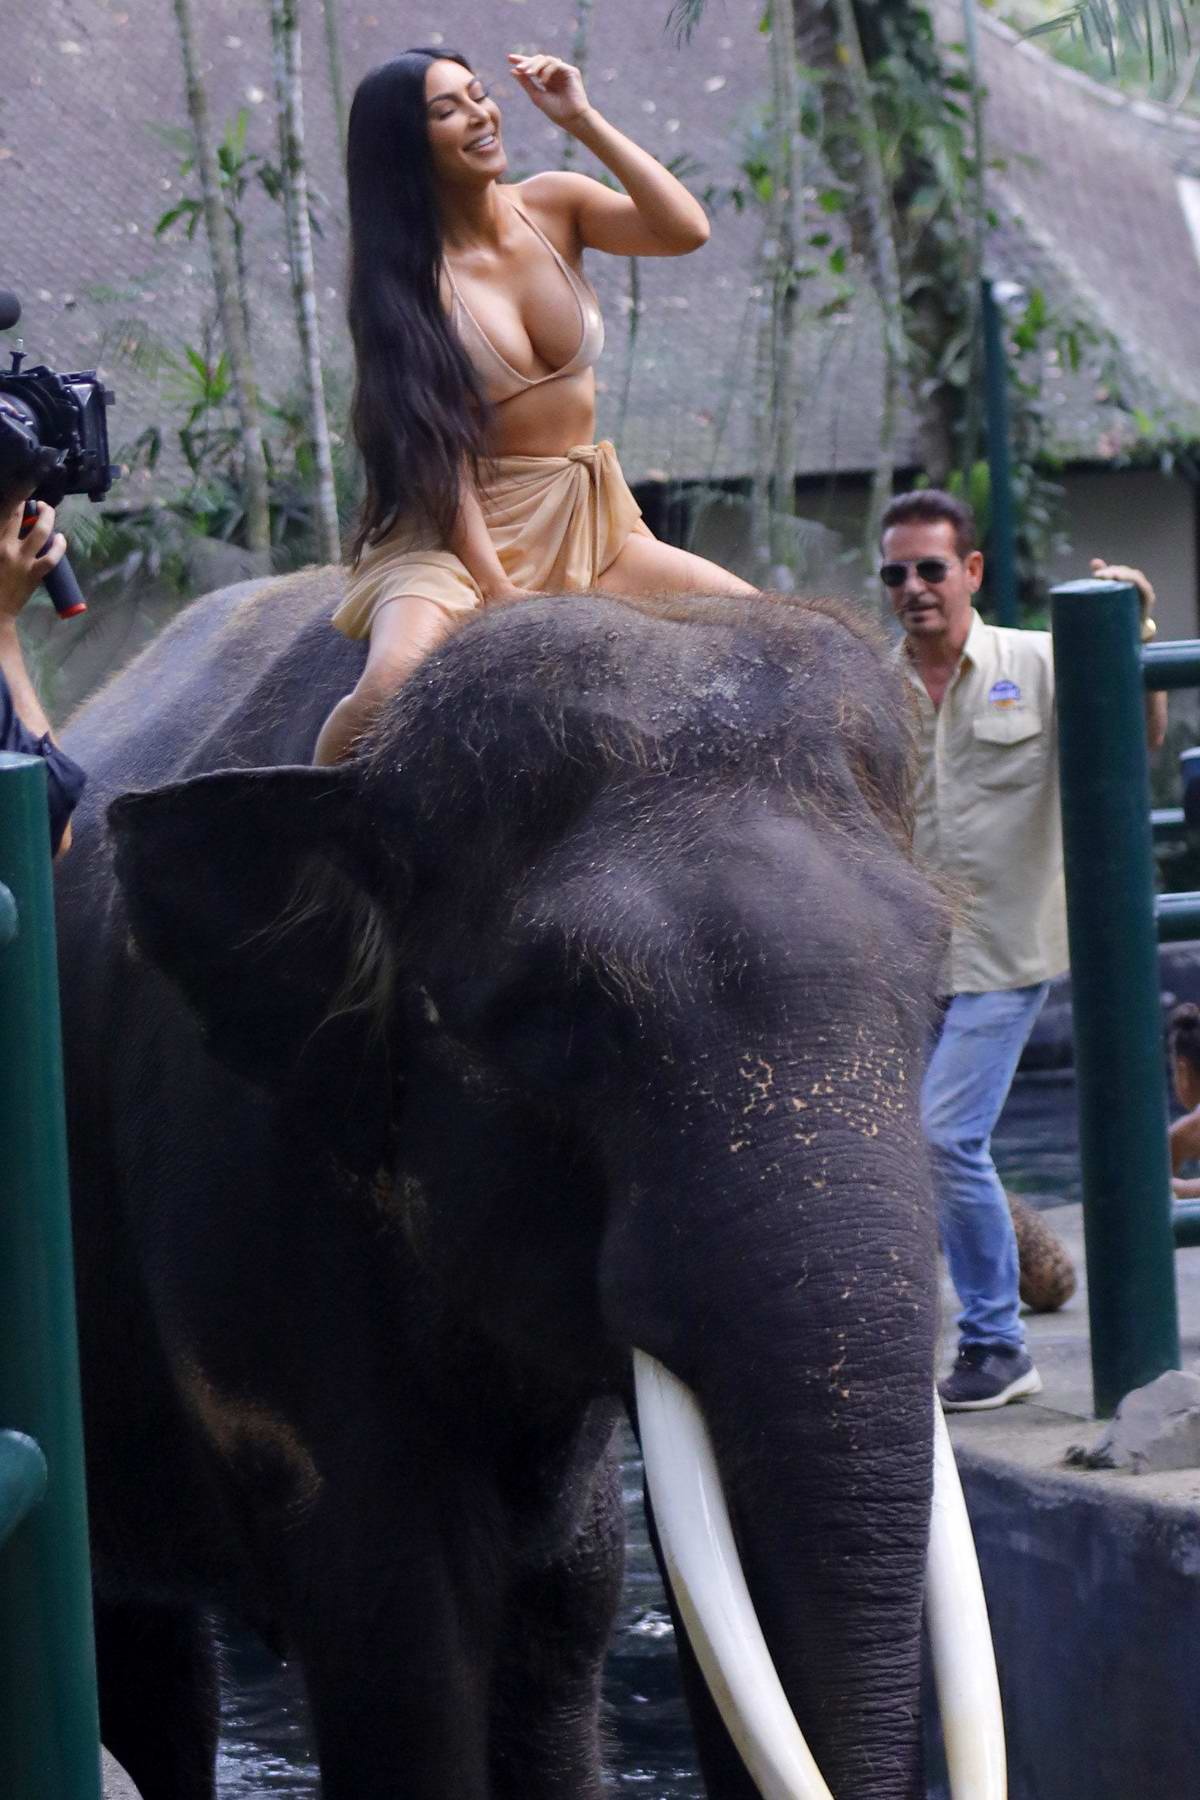 Kim Kardashian seen riding on an elephant while on vacation in Bali, Indonesia